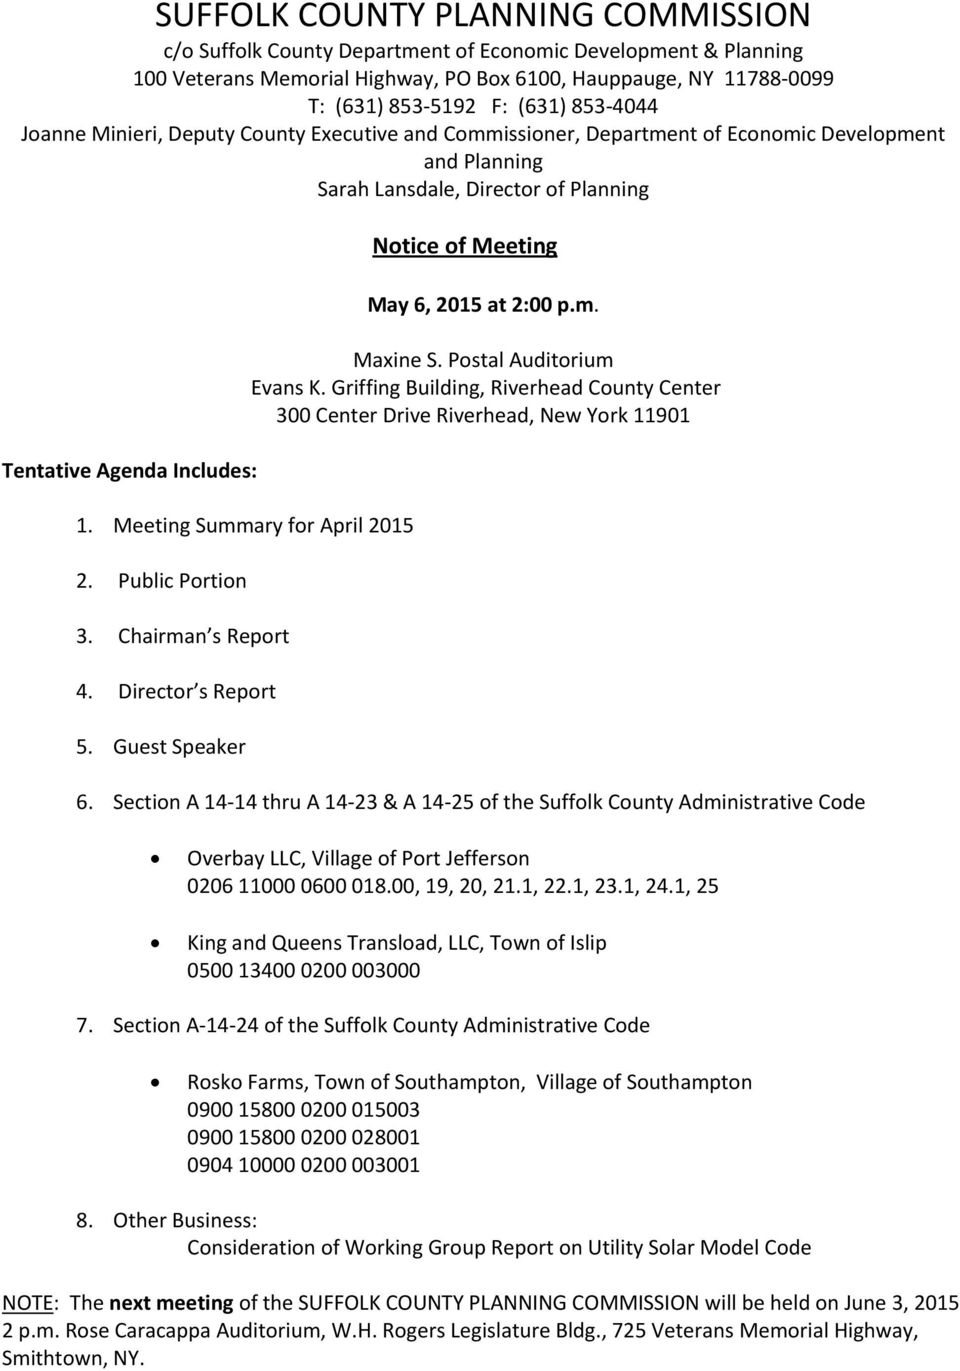 Meeting Summary for April 2015 2. Public Portion 3. Chairman s Report 4. Director s Report 5. Guest Speaker Notice of Meeting at 2:00 p.m. Maxine S. Postal Auditorium Evans K.